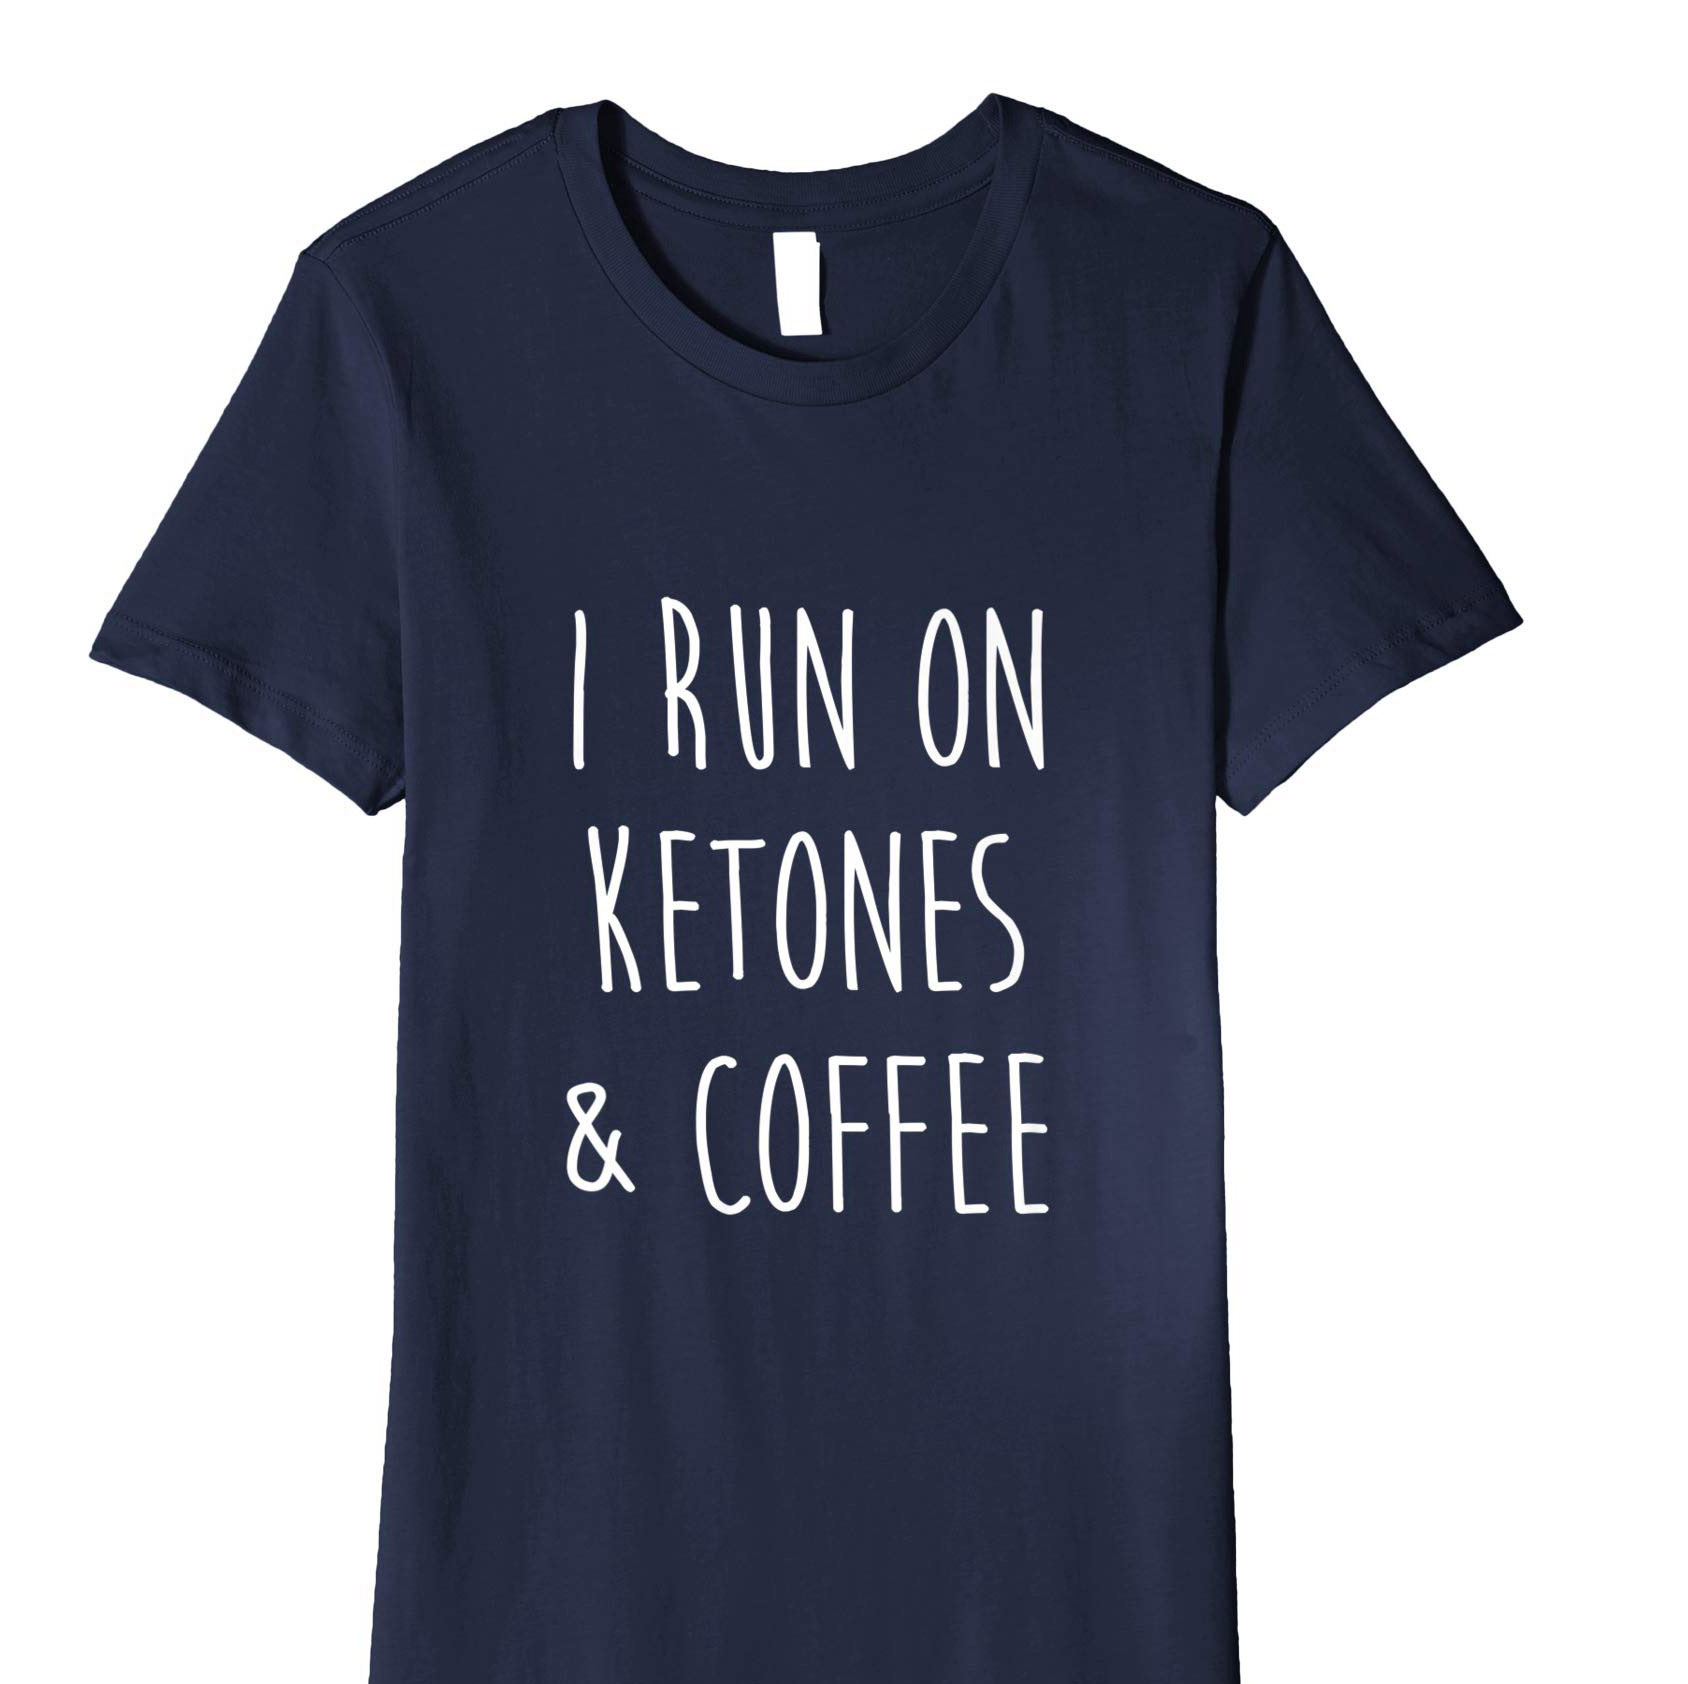 Women'S Tee Funny Keto Shirt I Runner On Ketosis Diet Gift For Lady Hip Hop Clothes Shirt Girl Female Lady image